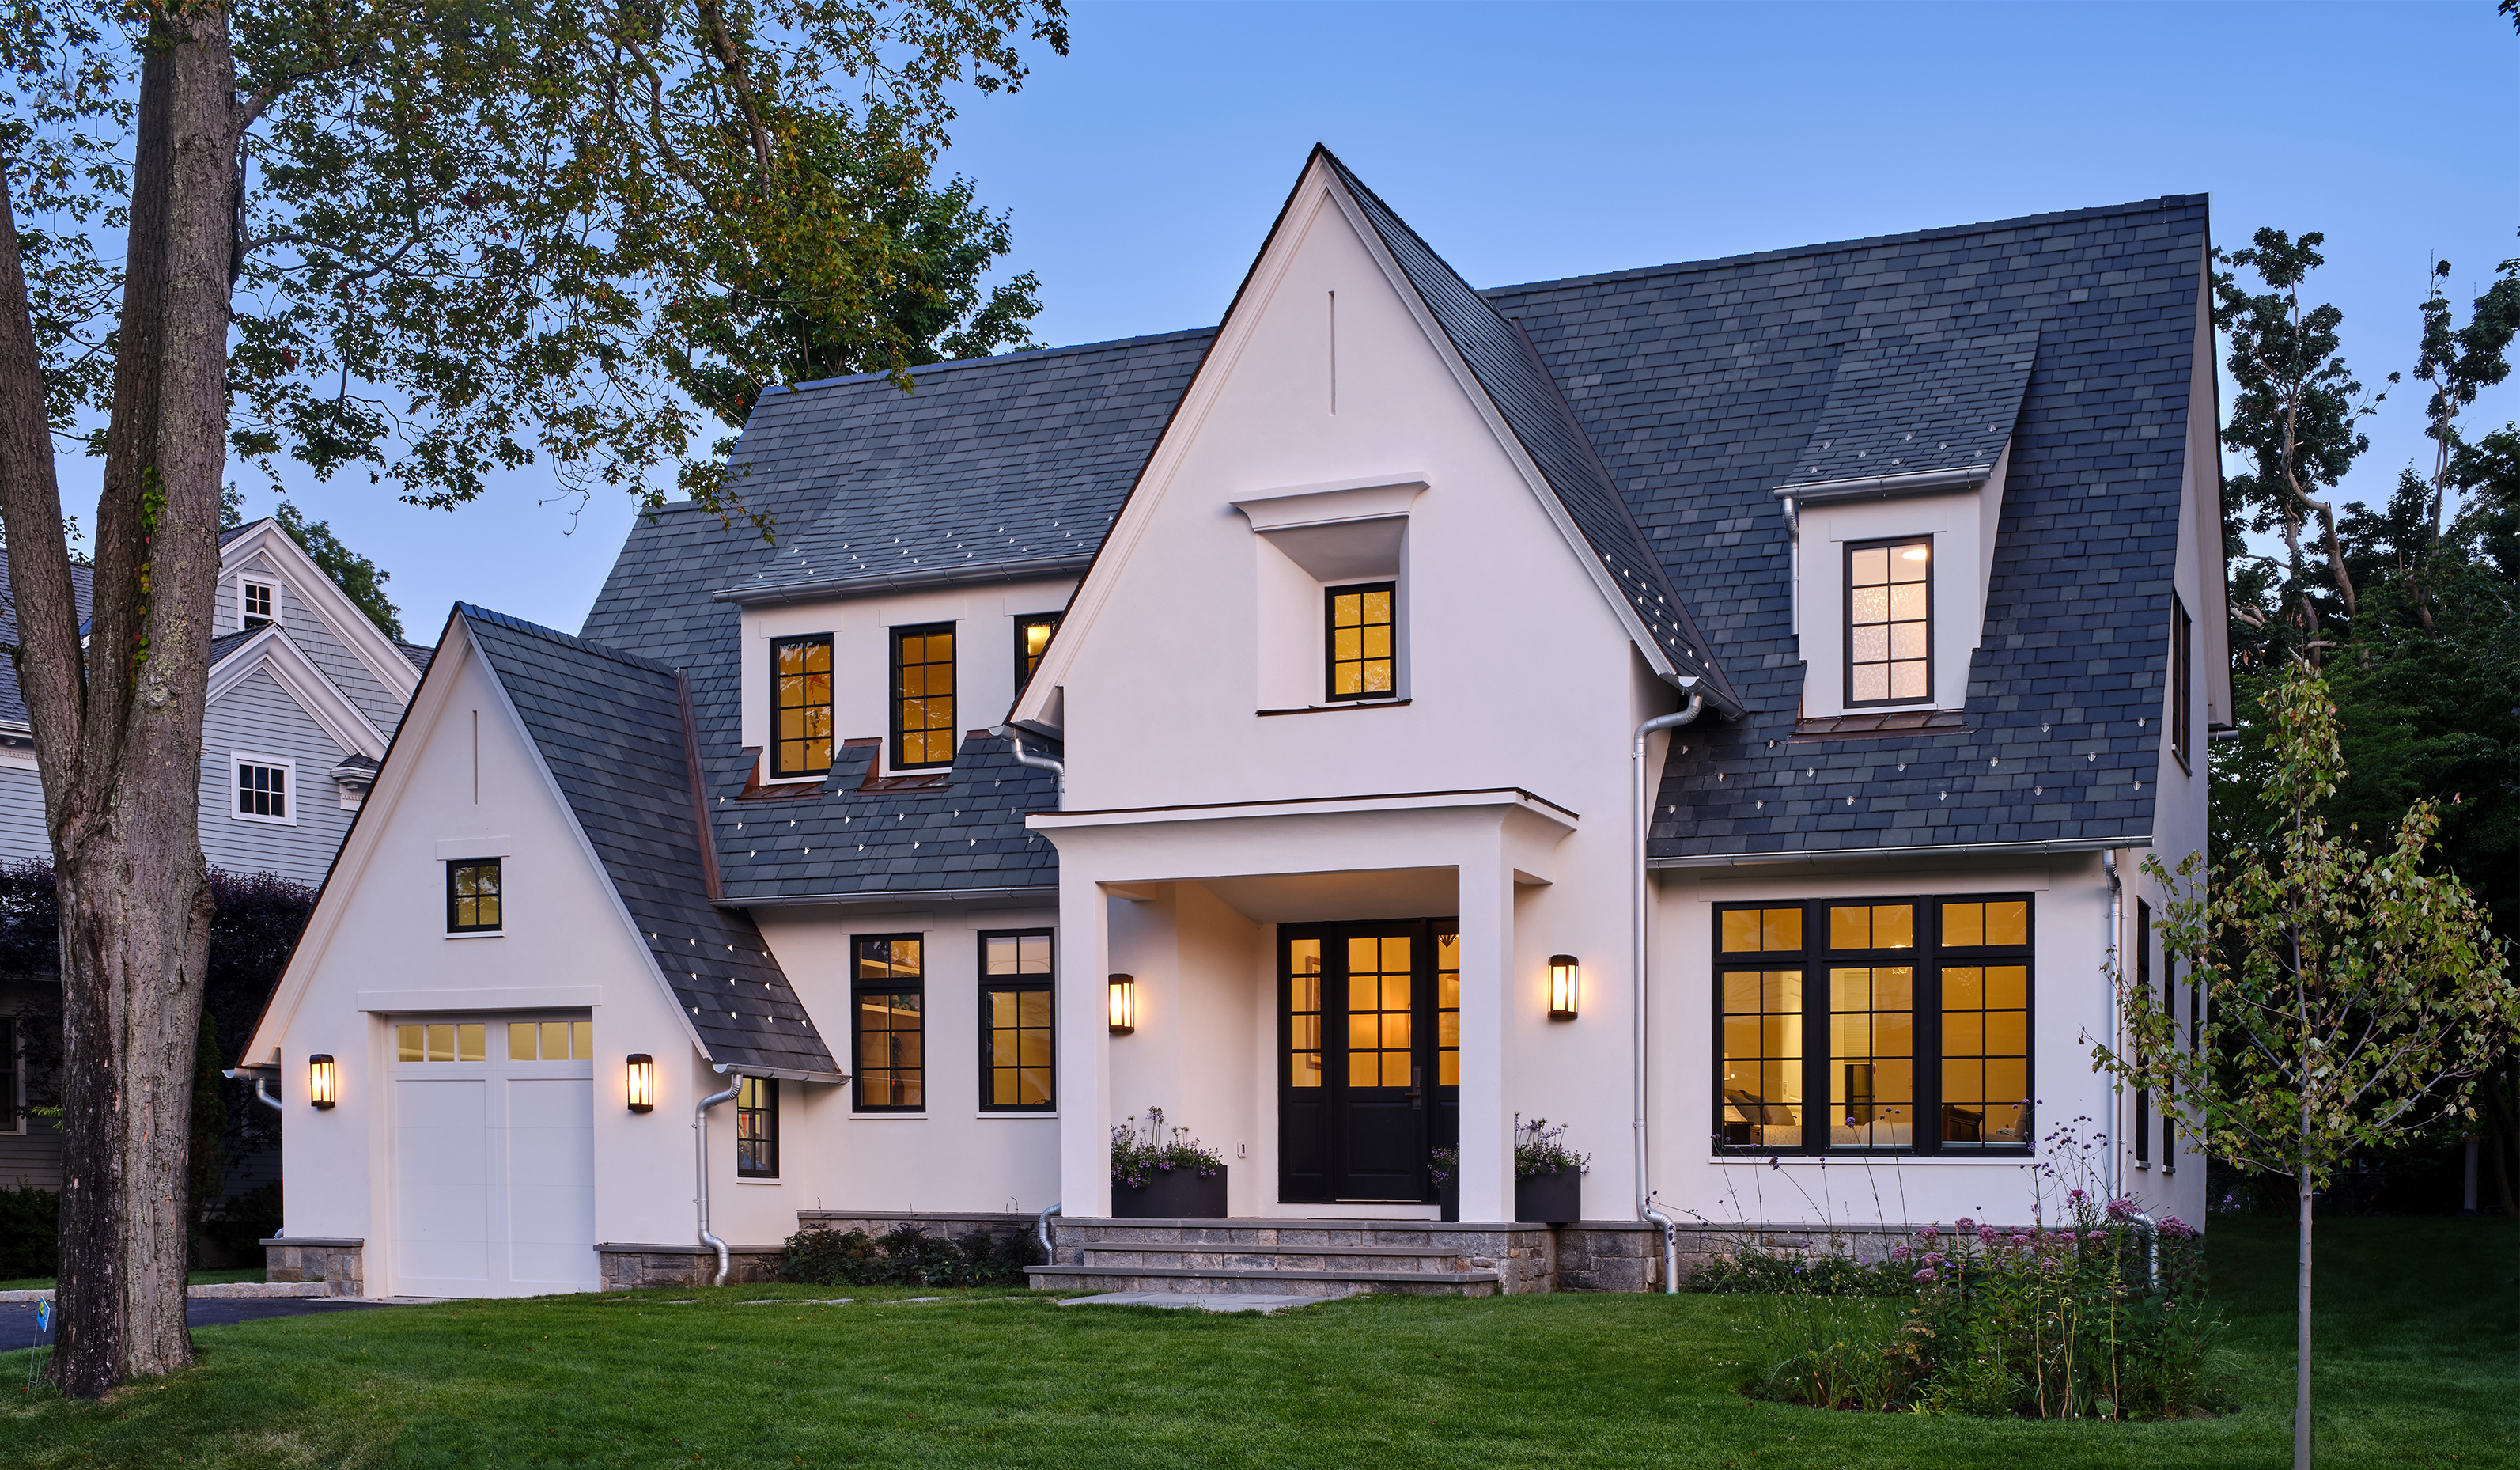 Larchmont NY custom stucco cottage exterior by fairfield county luxury custom architect